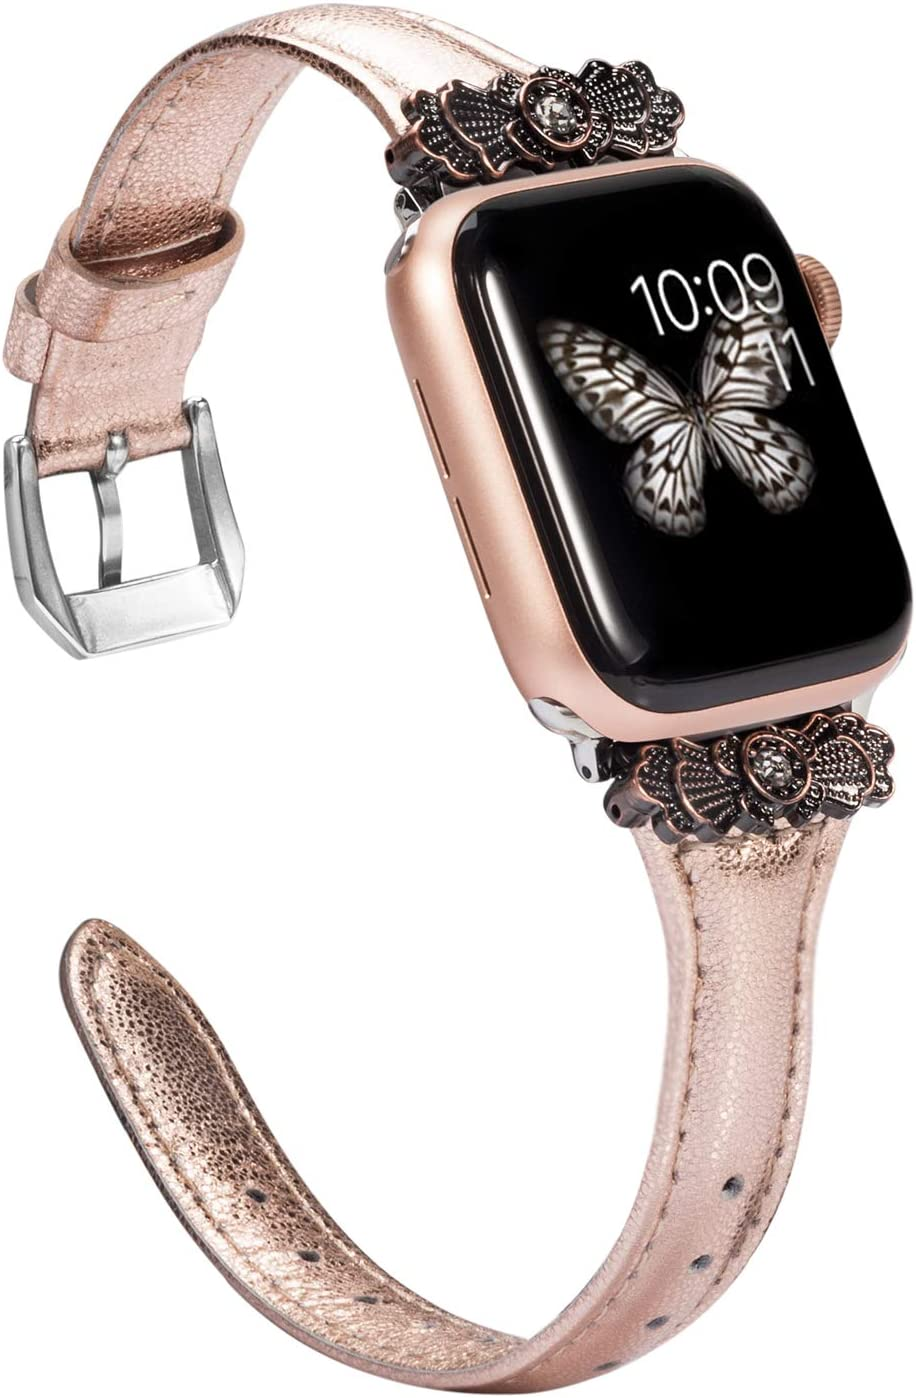 Wearlizer Rose Gold Thin Leather Compatible with Apple Watch Band 38mm 40mm for iWatch SE Womens Slim Metal with Unique Decoration Strap Wristband Bracelet (Silver Clasp) Series 6 5 4 3 2 1